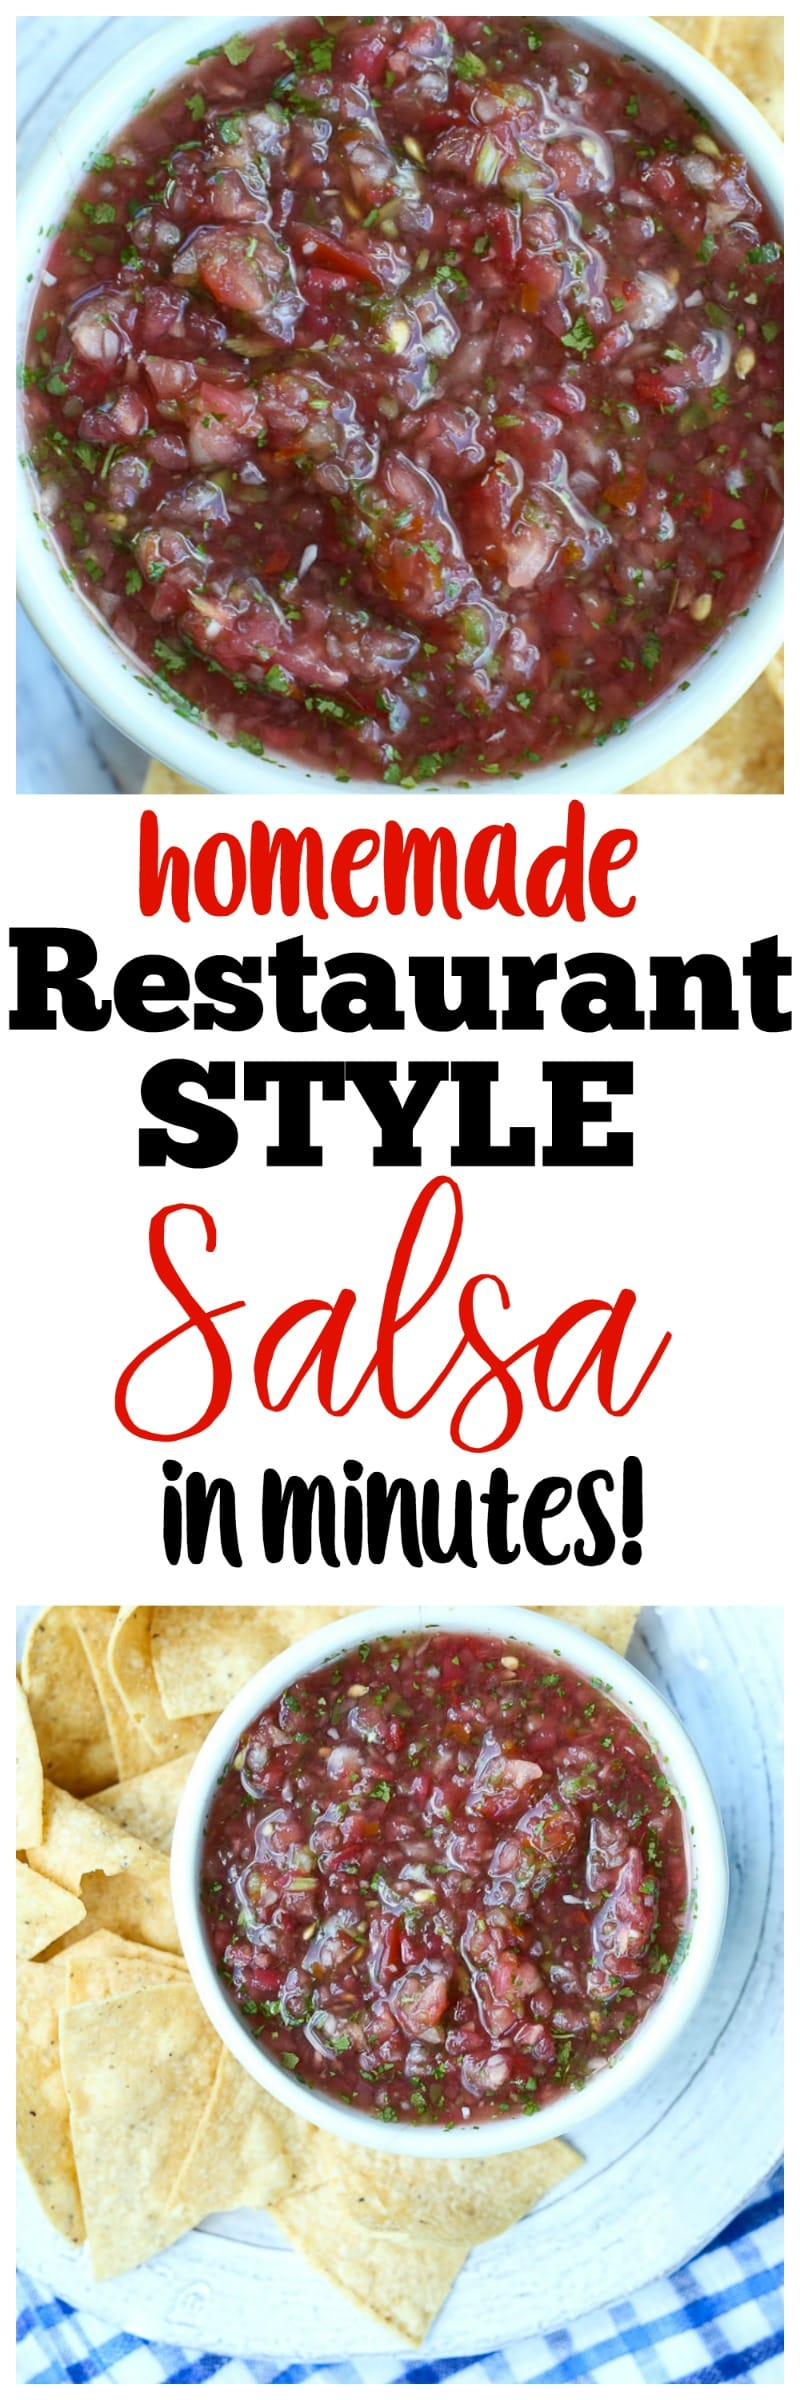 This restaurant style salsa recipe is made with fresh tomatoes and is ready in minutes! Quick, easy, delicious! The BEST! vegan   gluten-free   healthy   Paleo   snack   appetizer